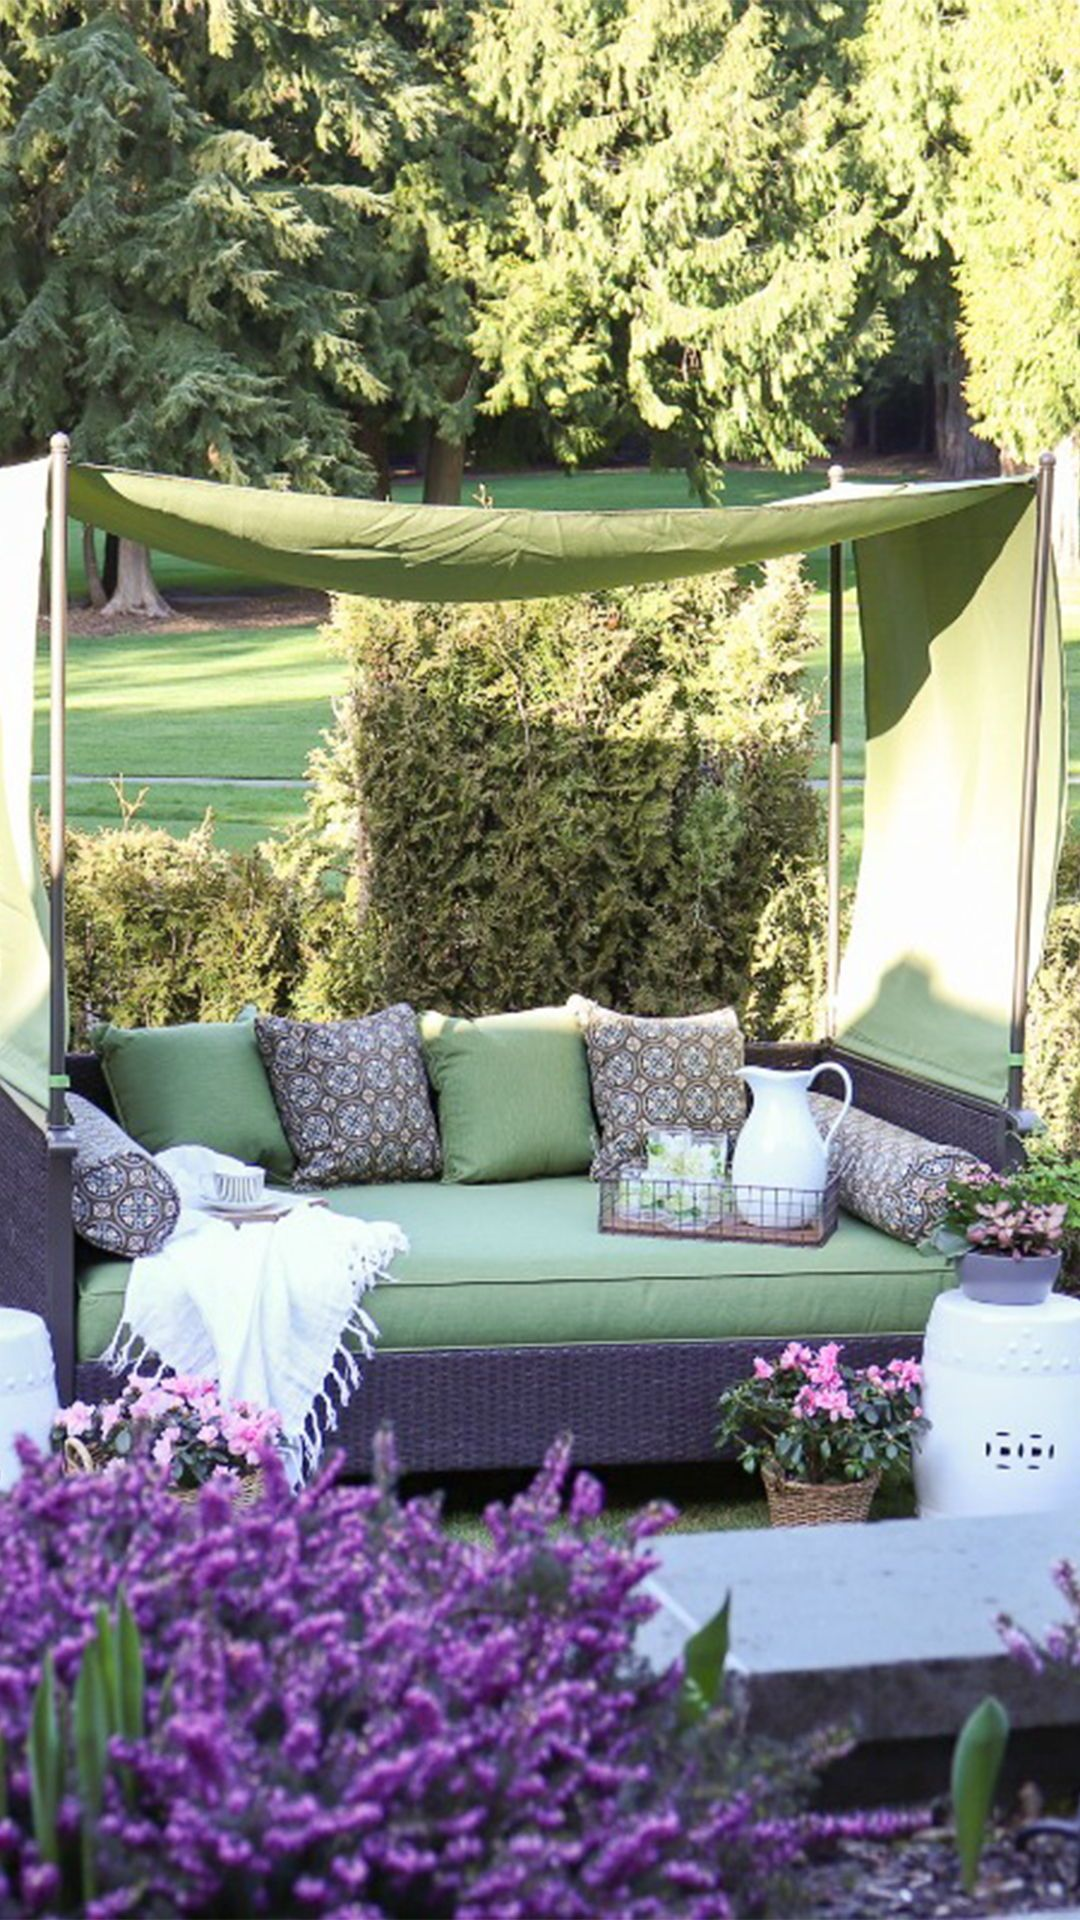 89edf74492ea47e26a65621dbef83375 - Better Homes And Gardens Providence Outdoor Daybed